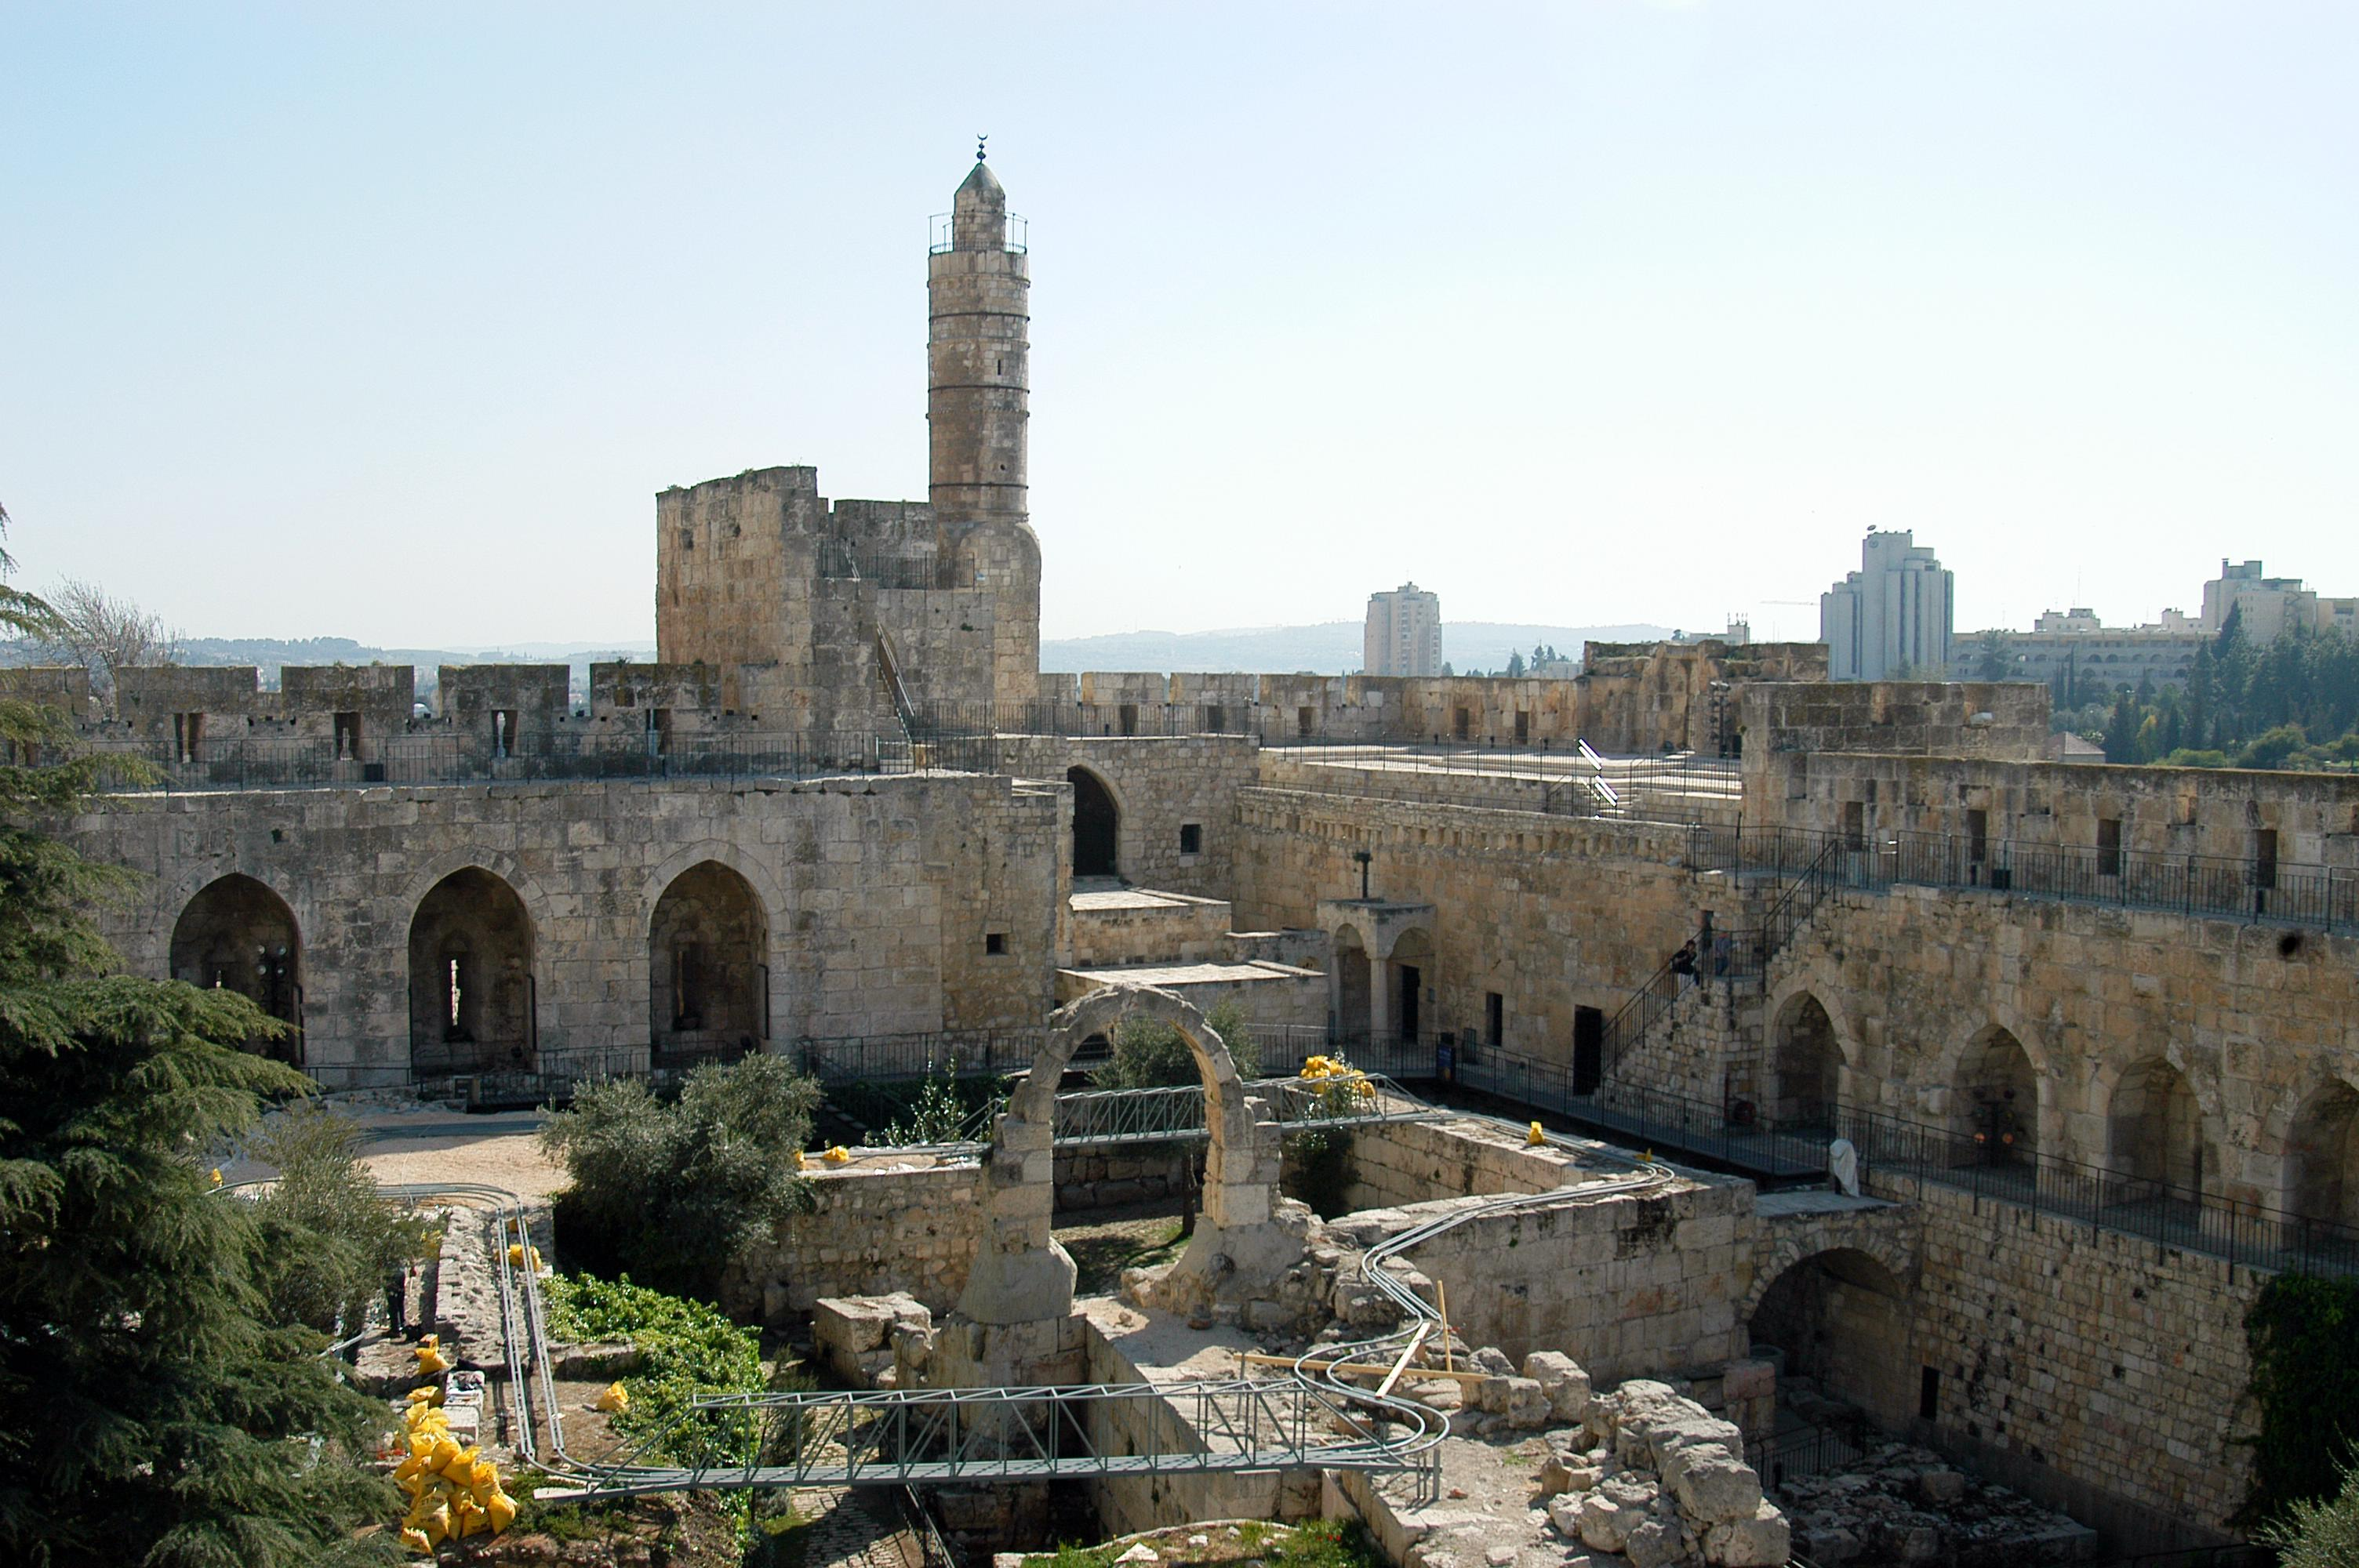 Tower Of David (Citadel), Jerusalem by Wayne McLean (CC)